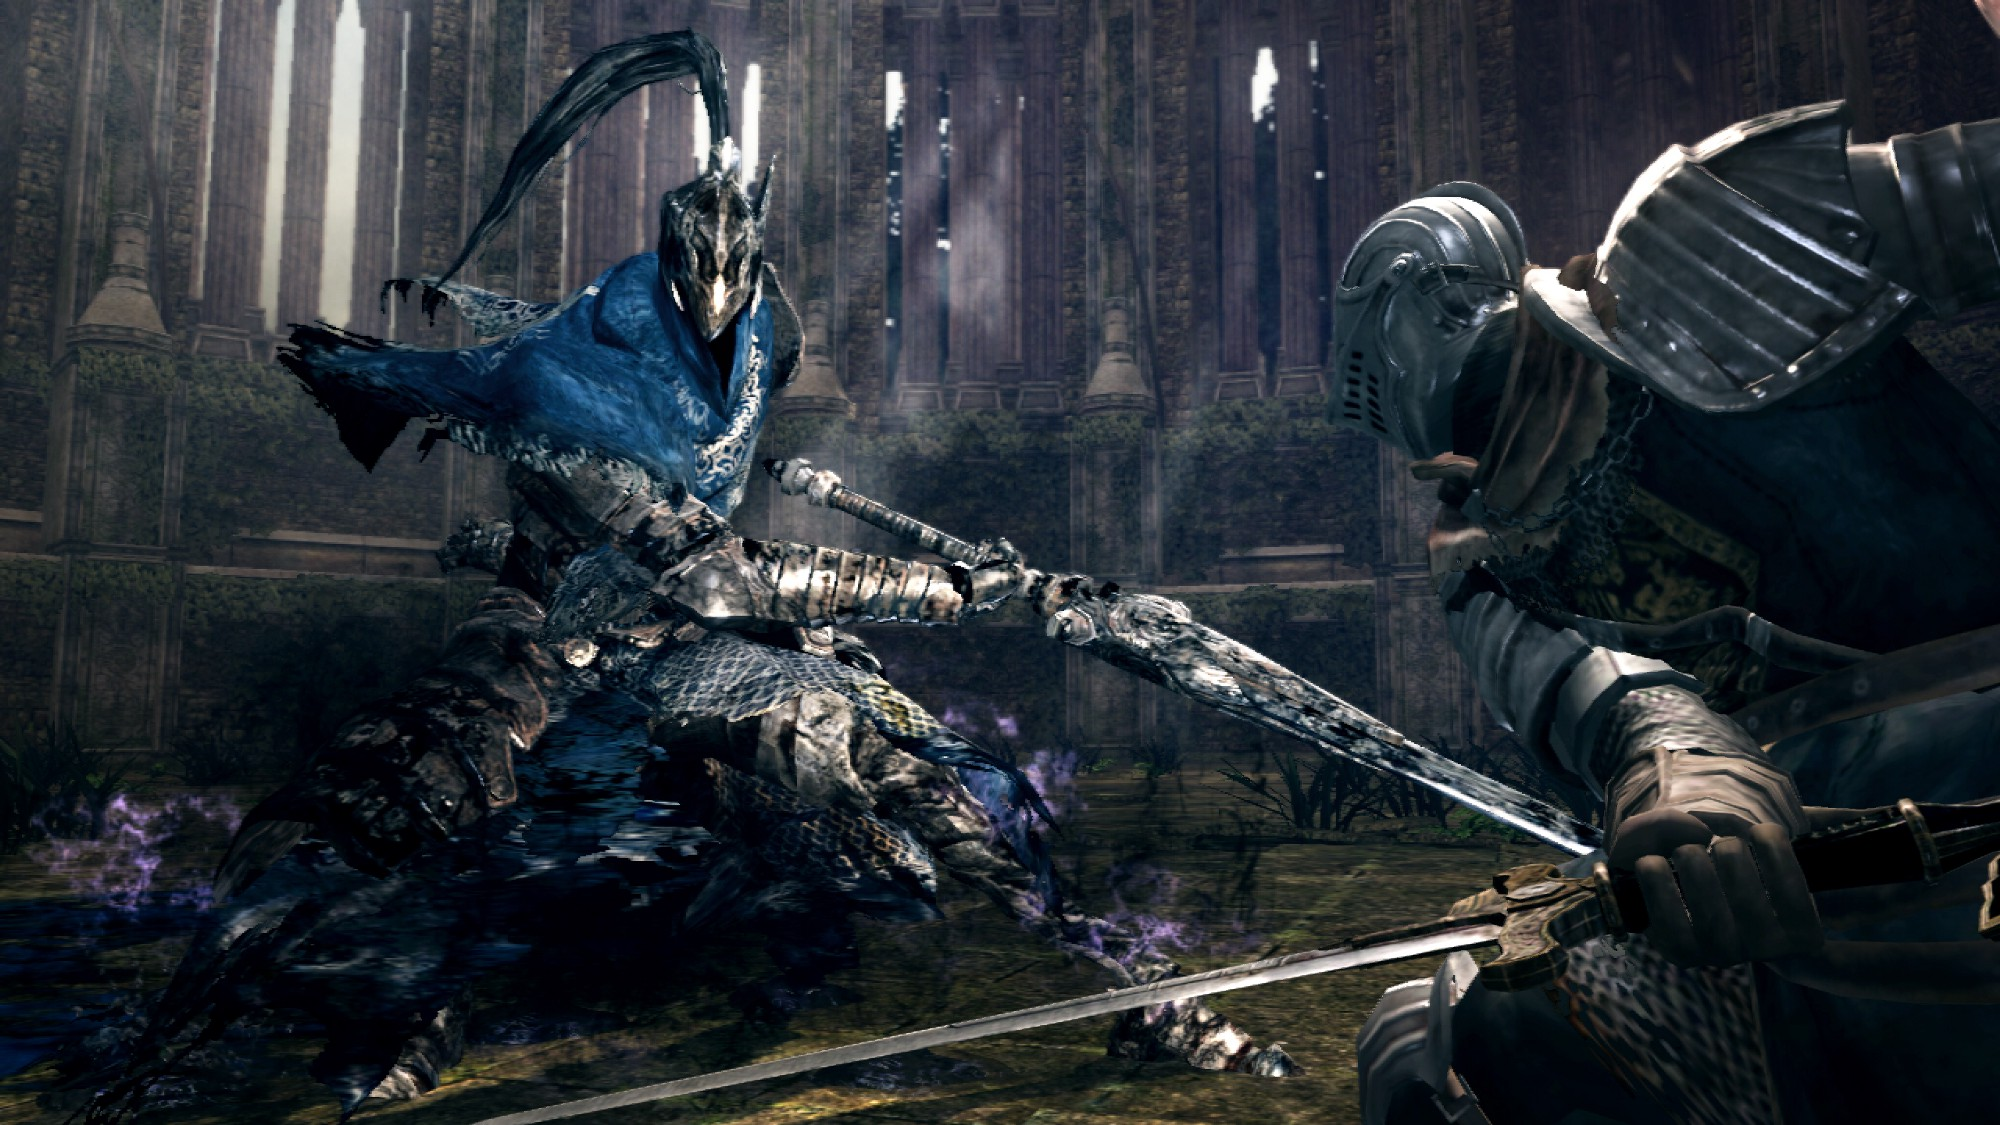 A large blue knight with a scythe attacks the player character, also a knight but wielding a sword, in a large dark hall.